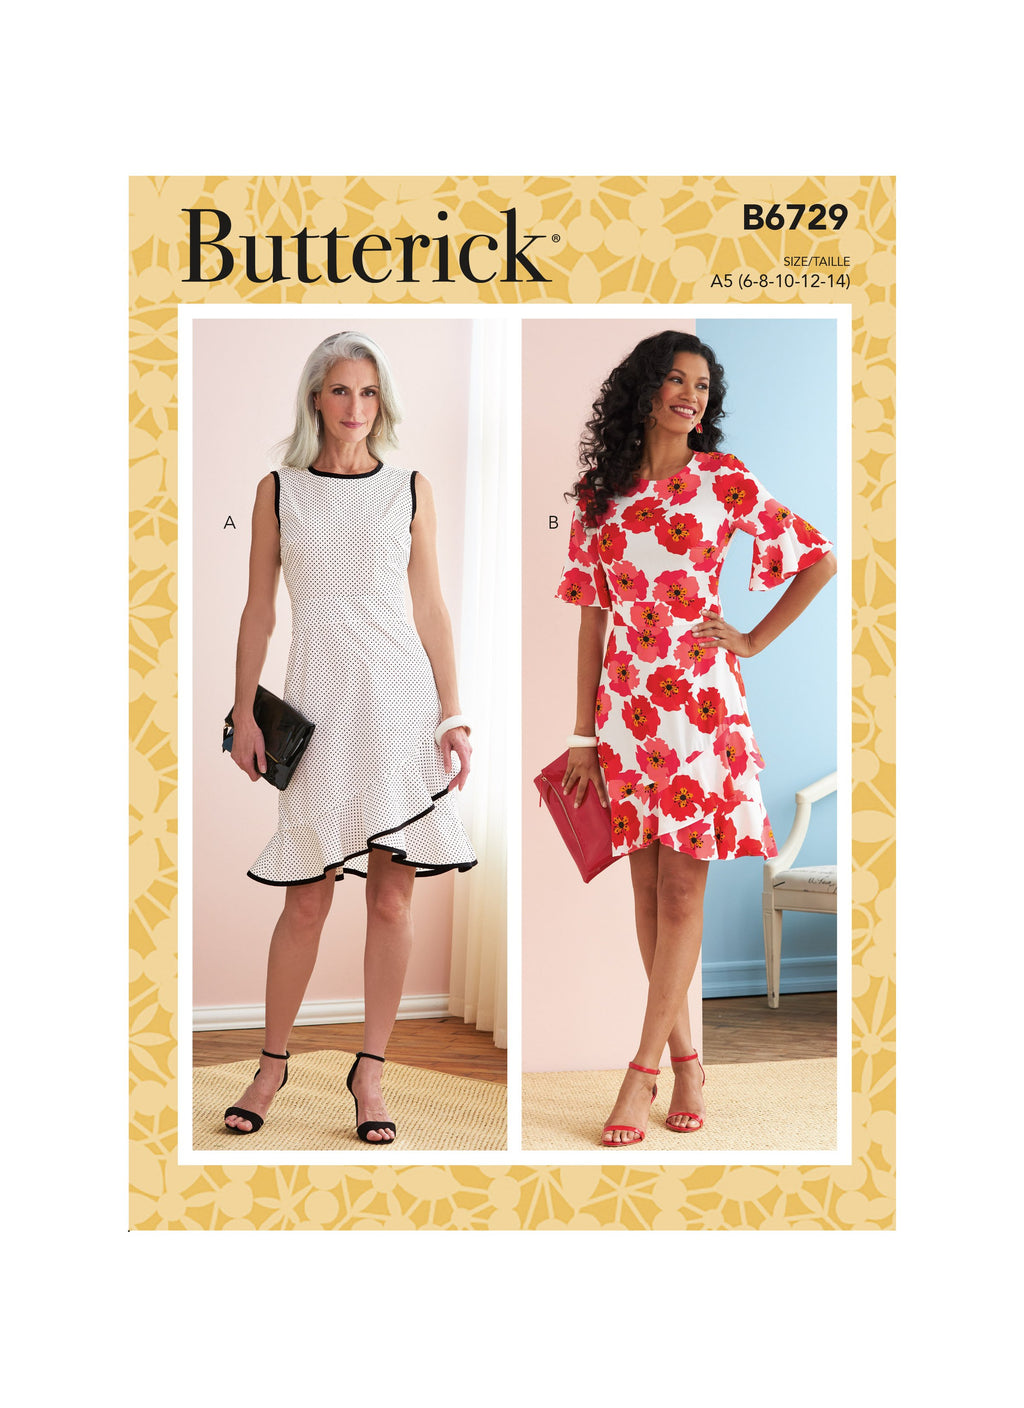 Butterick Sewing Pattern 6729 Misses' Dresses